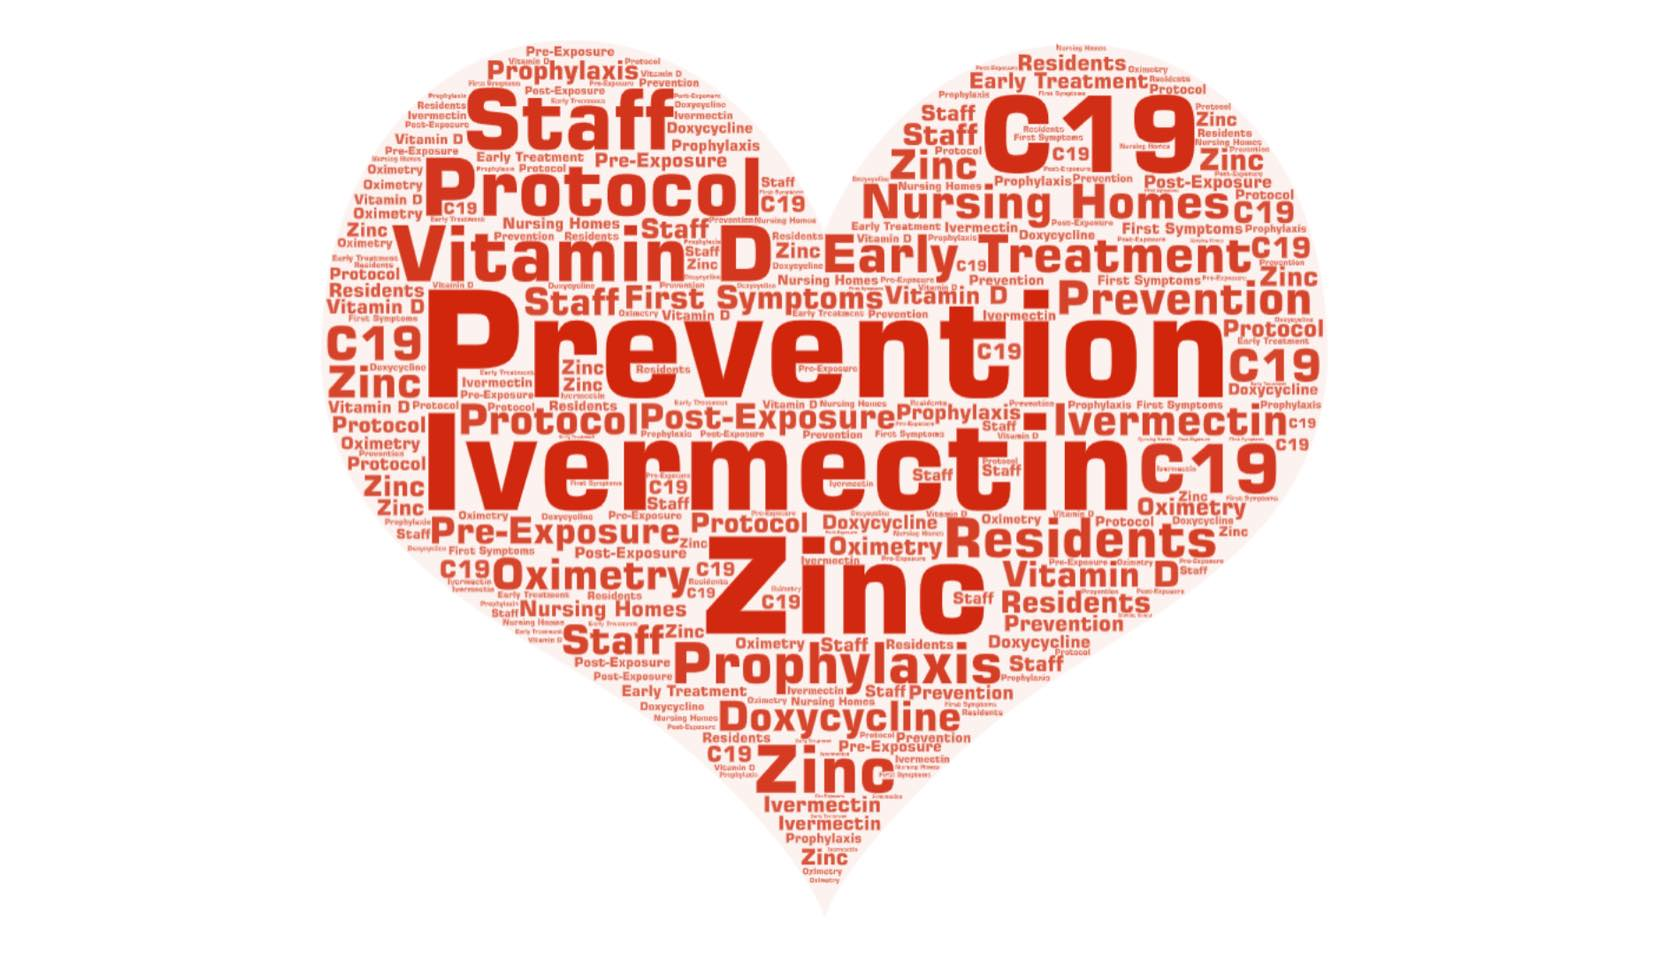 A Protocol for the Prevention and Early Treatment of COVID-19 in Nursing Homes